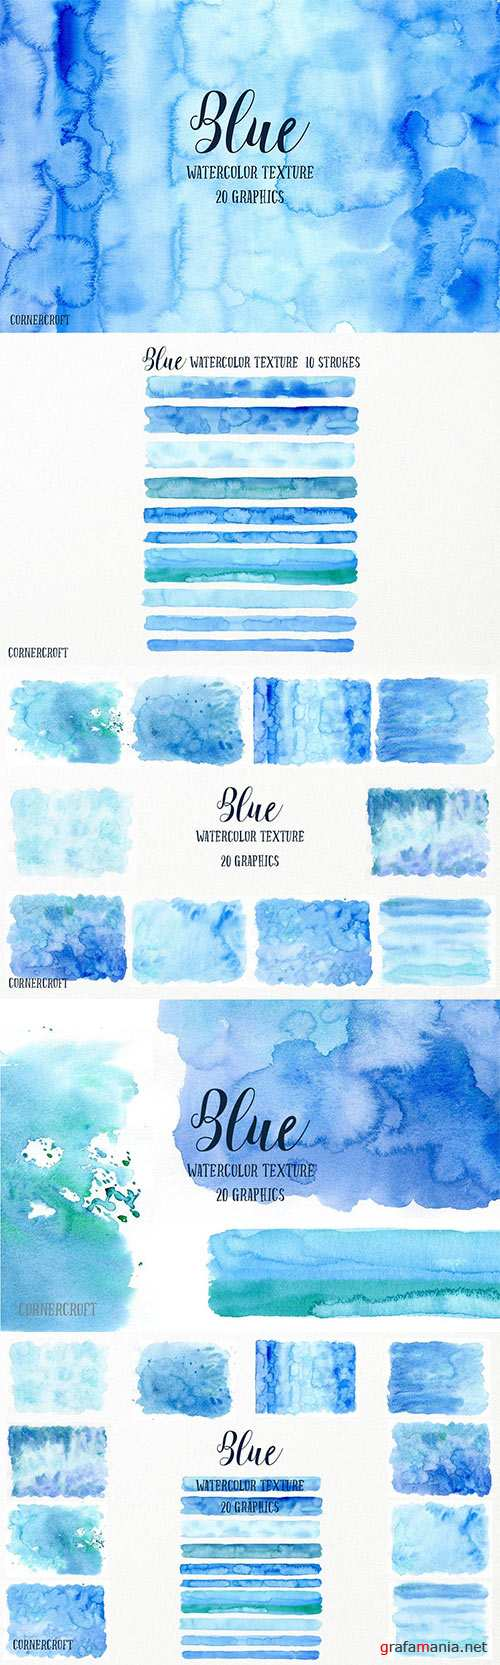 Watercolor Texture Blue